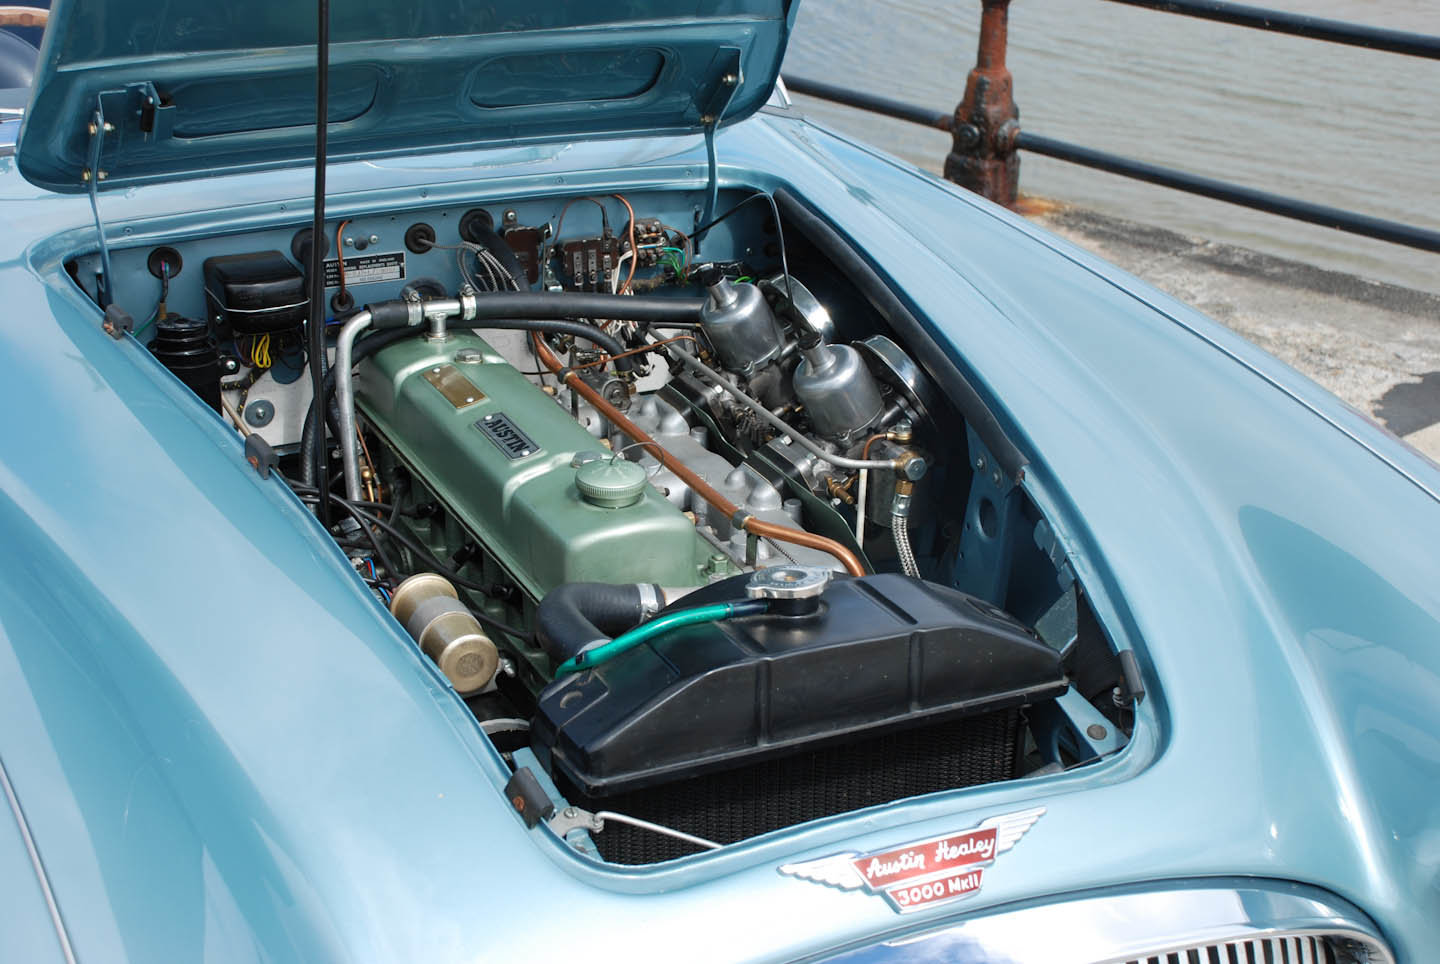 1962 Austin Healey 3000 Mk 2a BJ7 For Sale (picture 4 of 10)